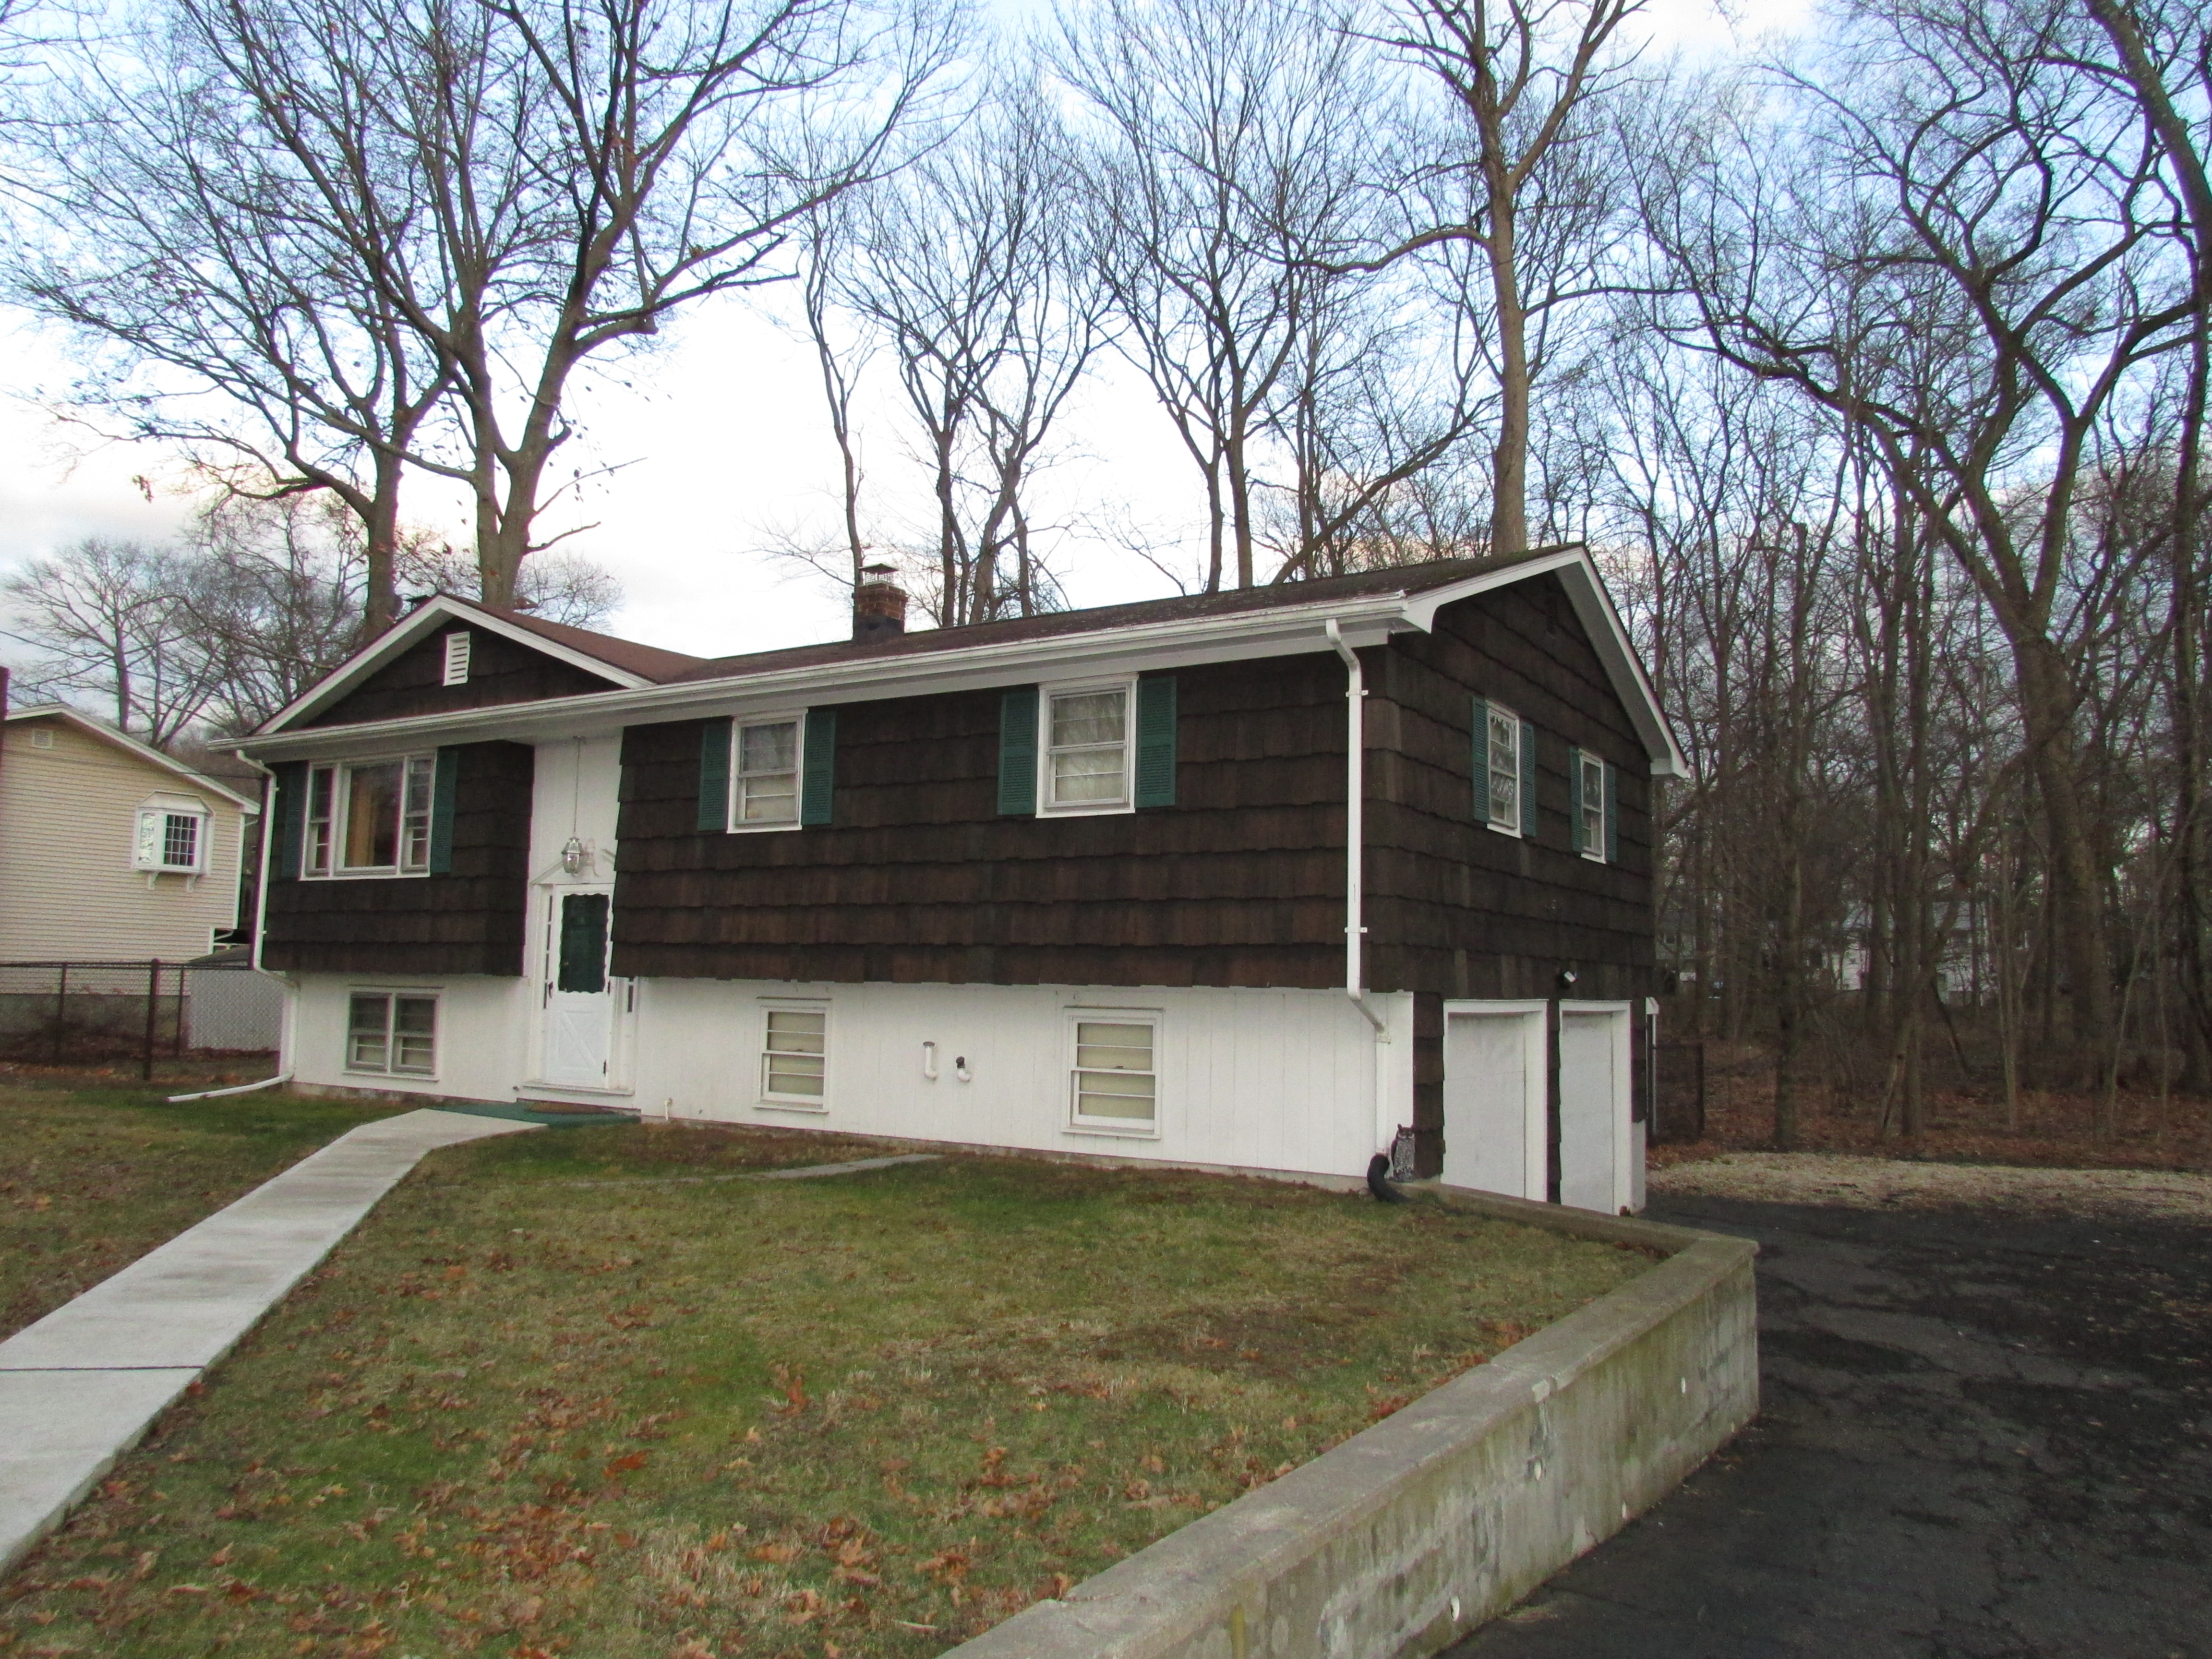 Maison unifamiliale pour l Vente à Spacious Raised Ranch 25 Shadyside Lane Milford, Connecticut, 06460 États-Unis